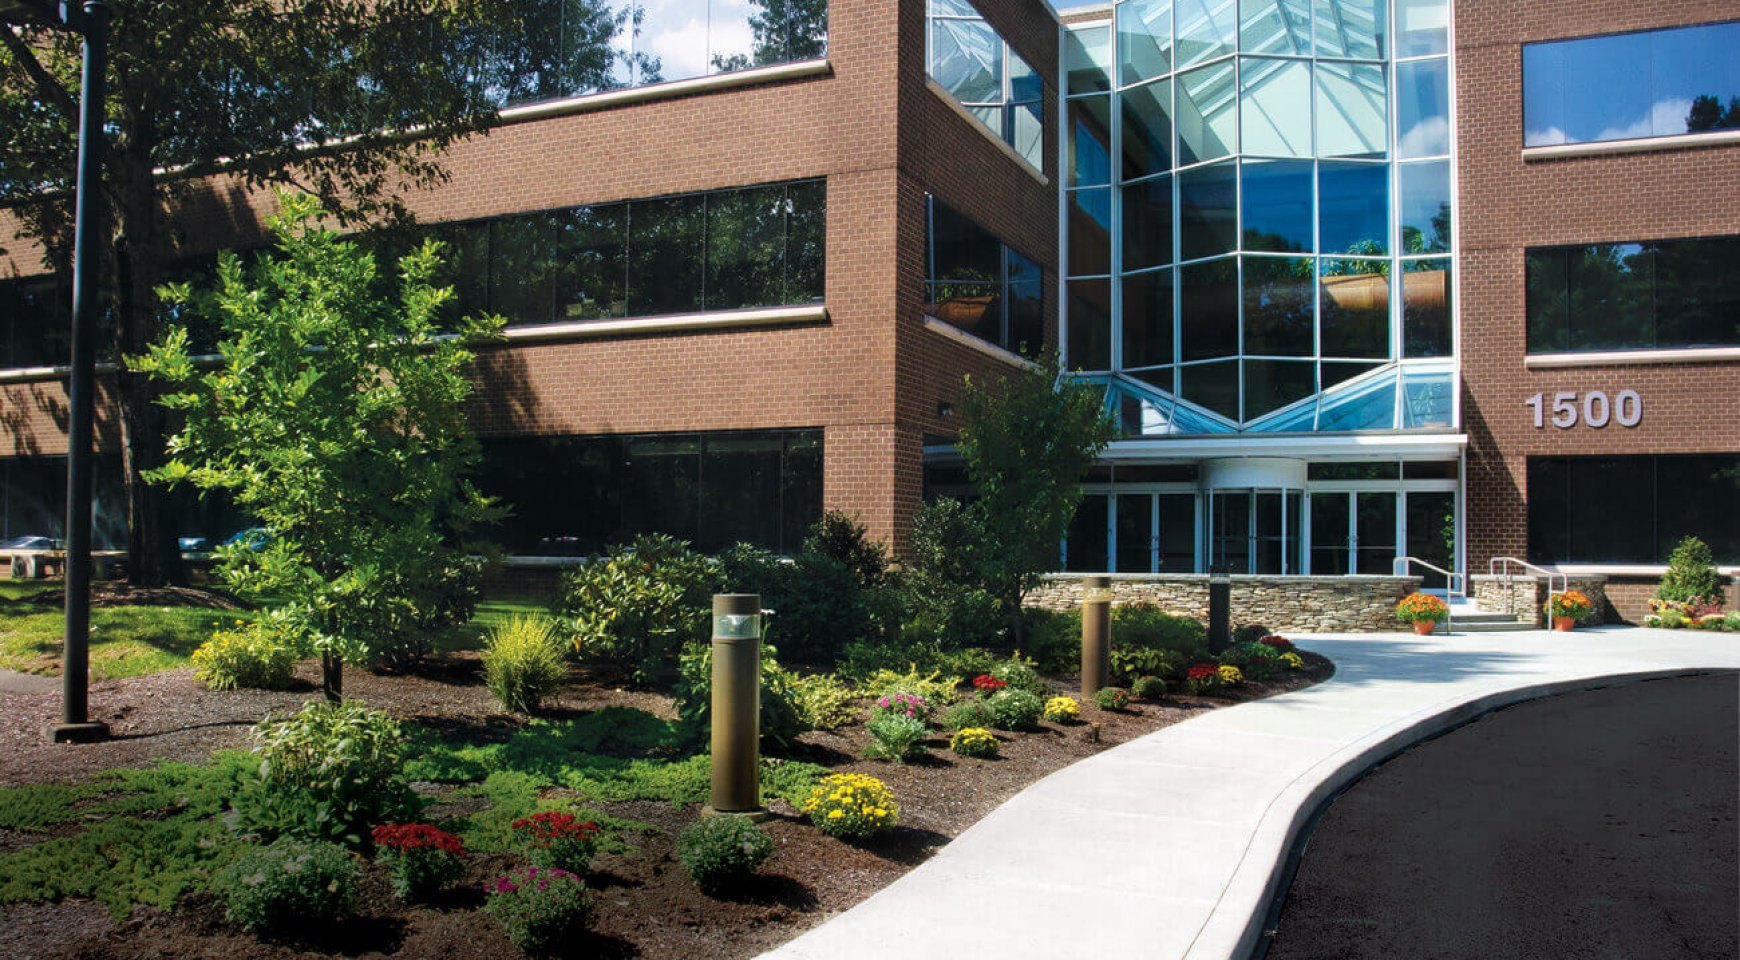 Commercial Office Space Available At 1500 W Park Dr